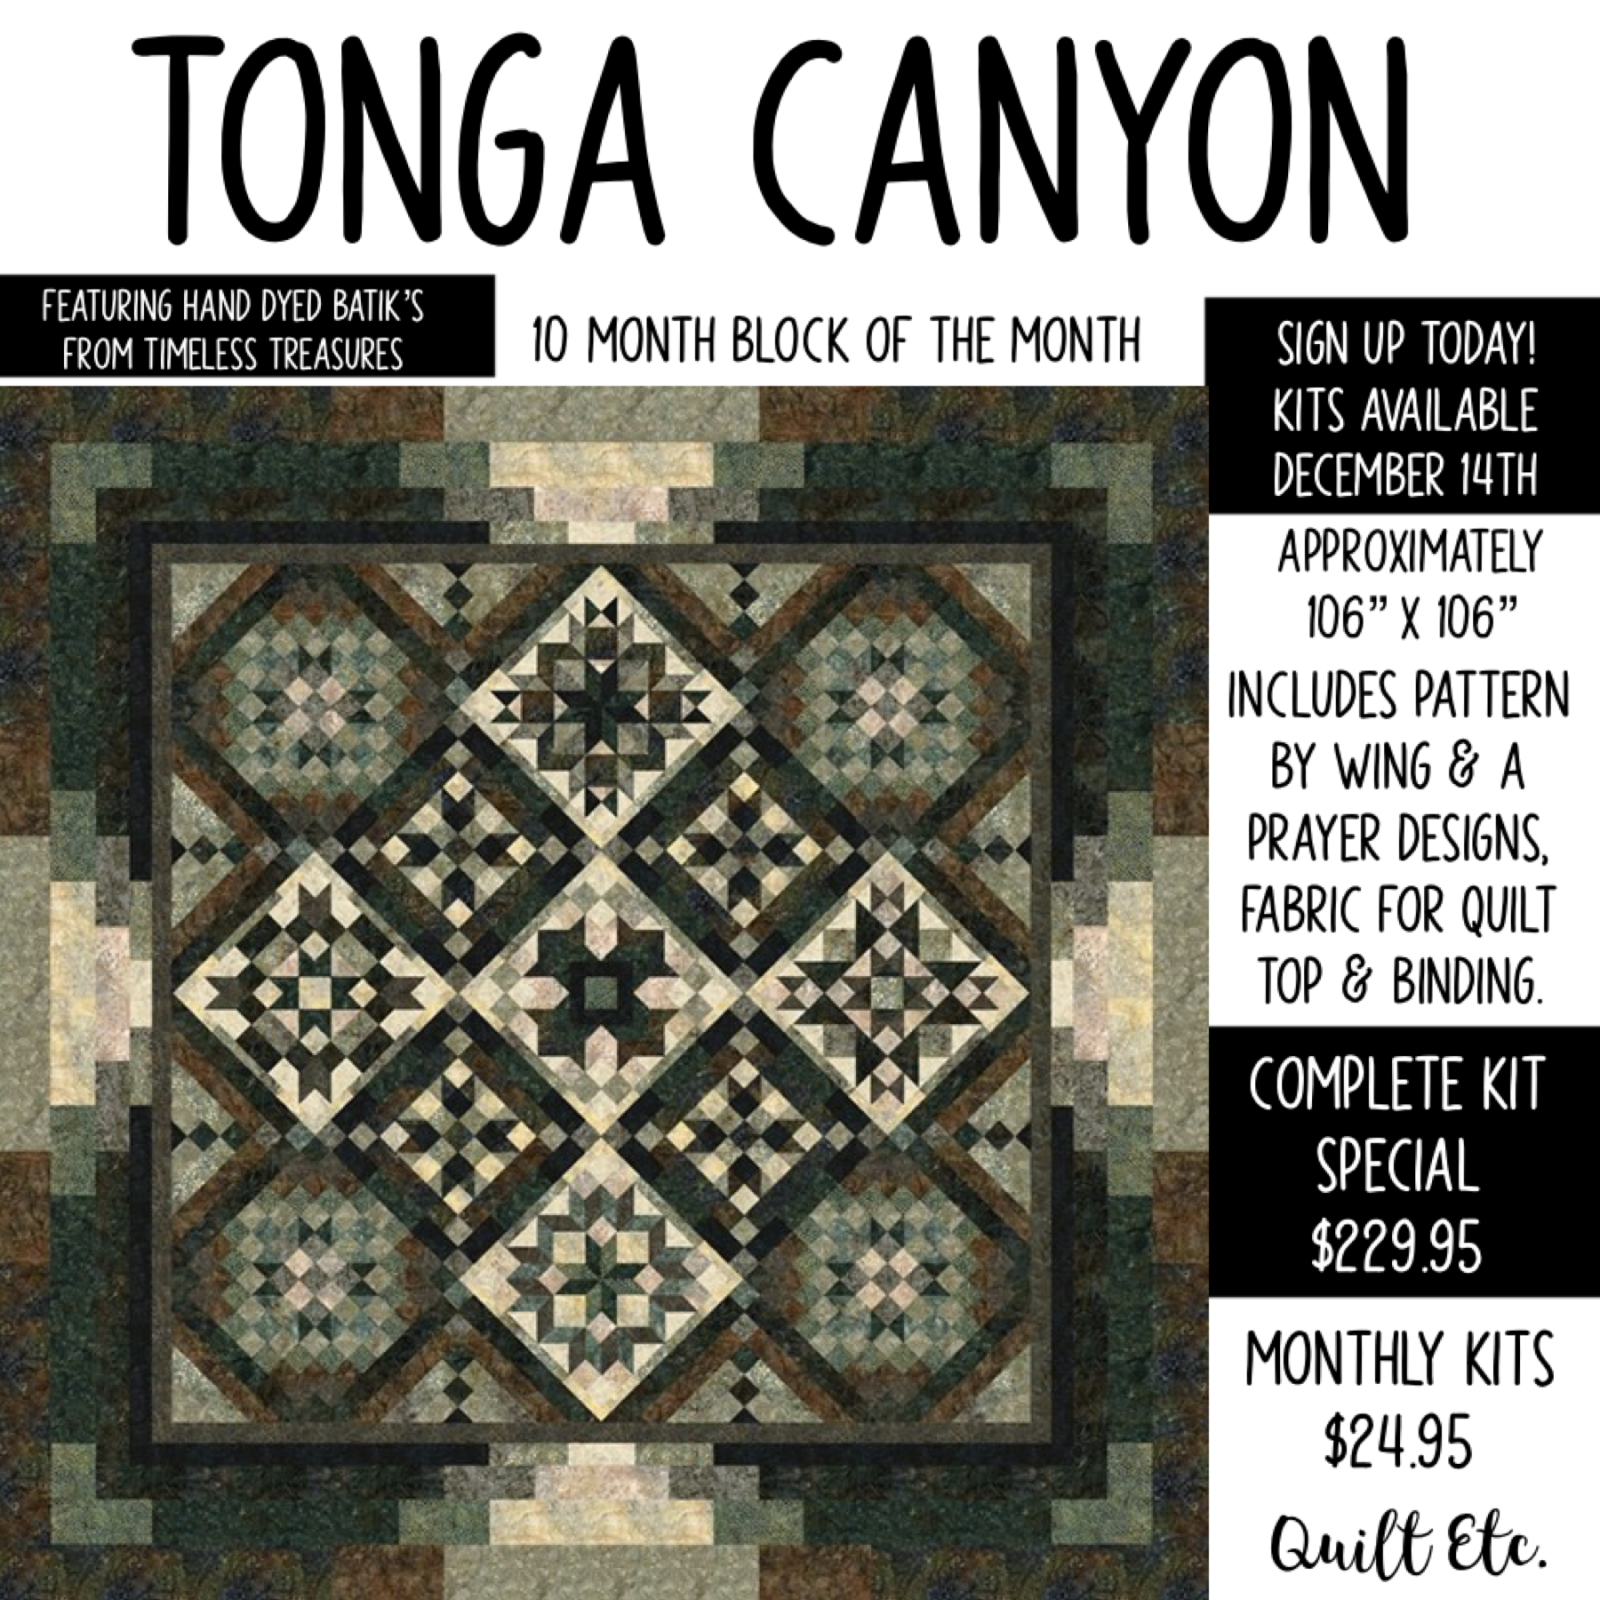 Tonga Canyon Block Of The Month